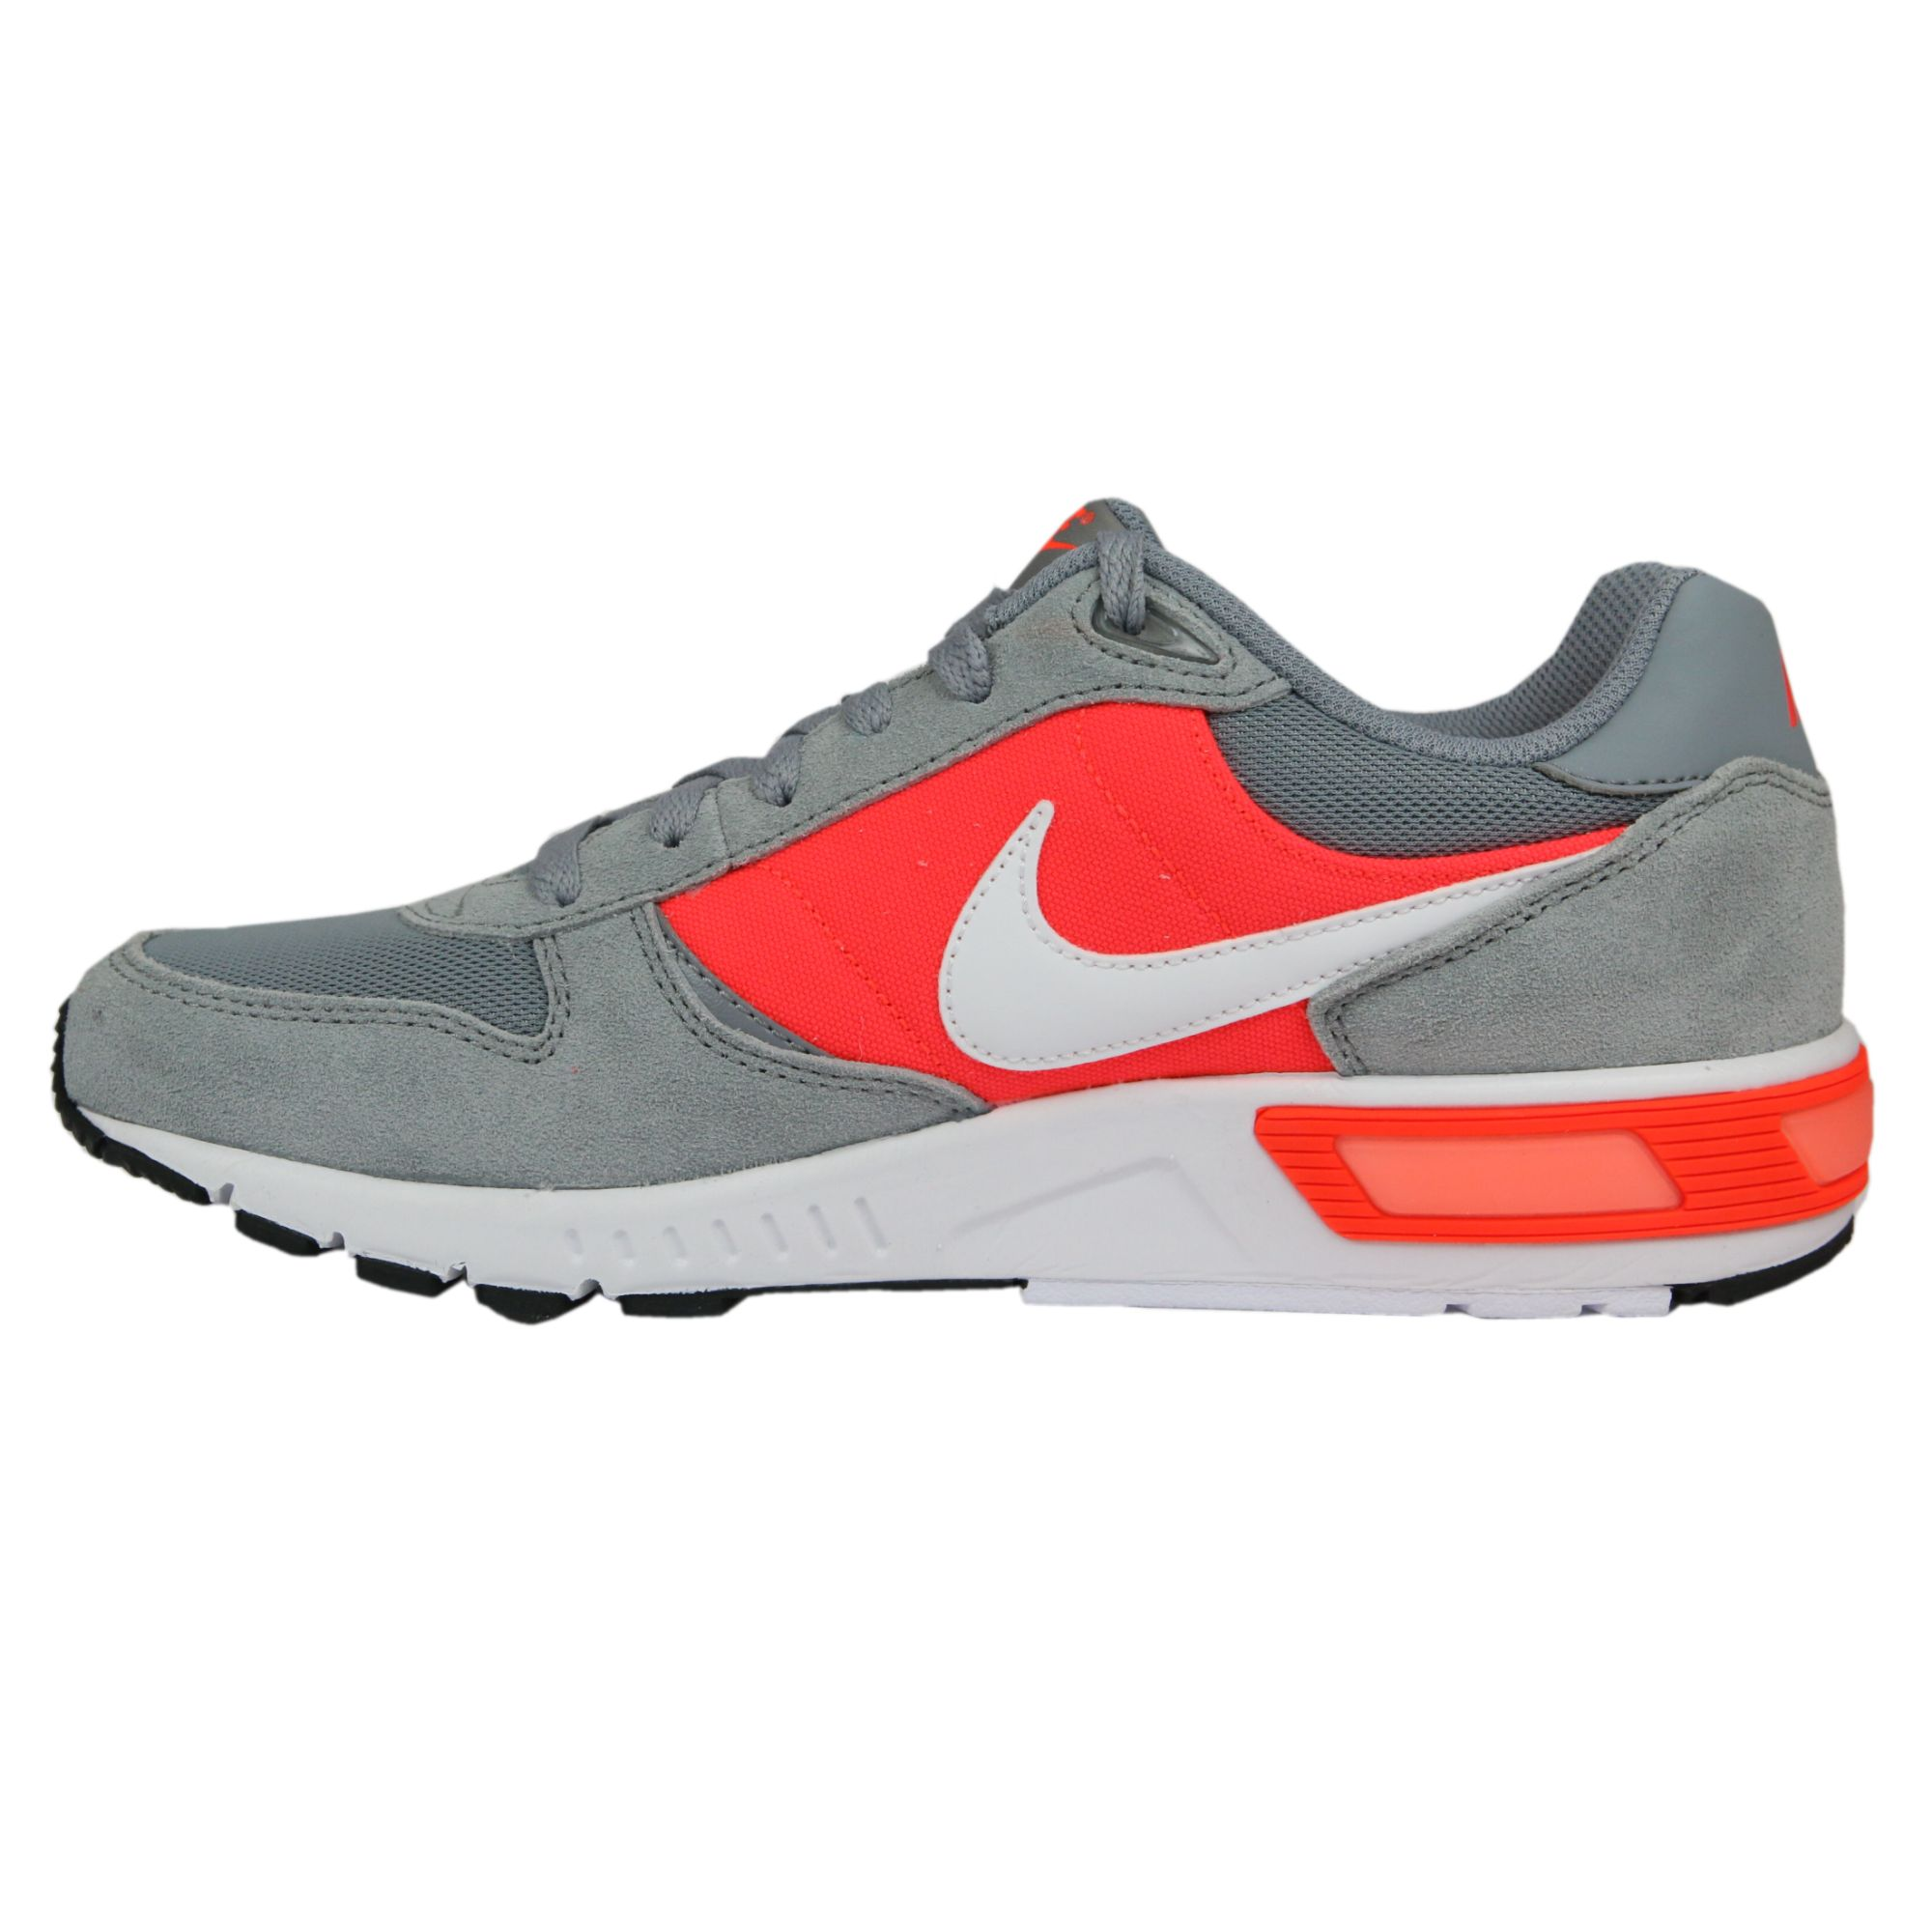 Nike-Nightgazer-LW-SE-Shoes-Gym-Shoes-Sneakers-